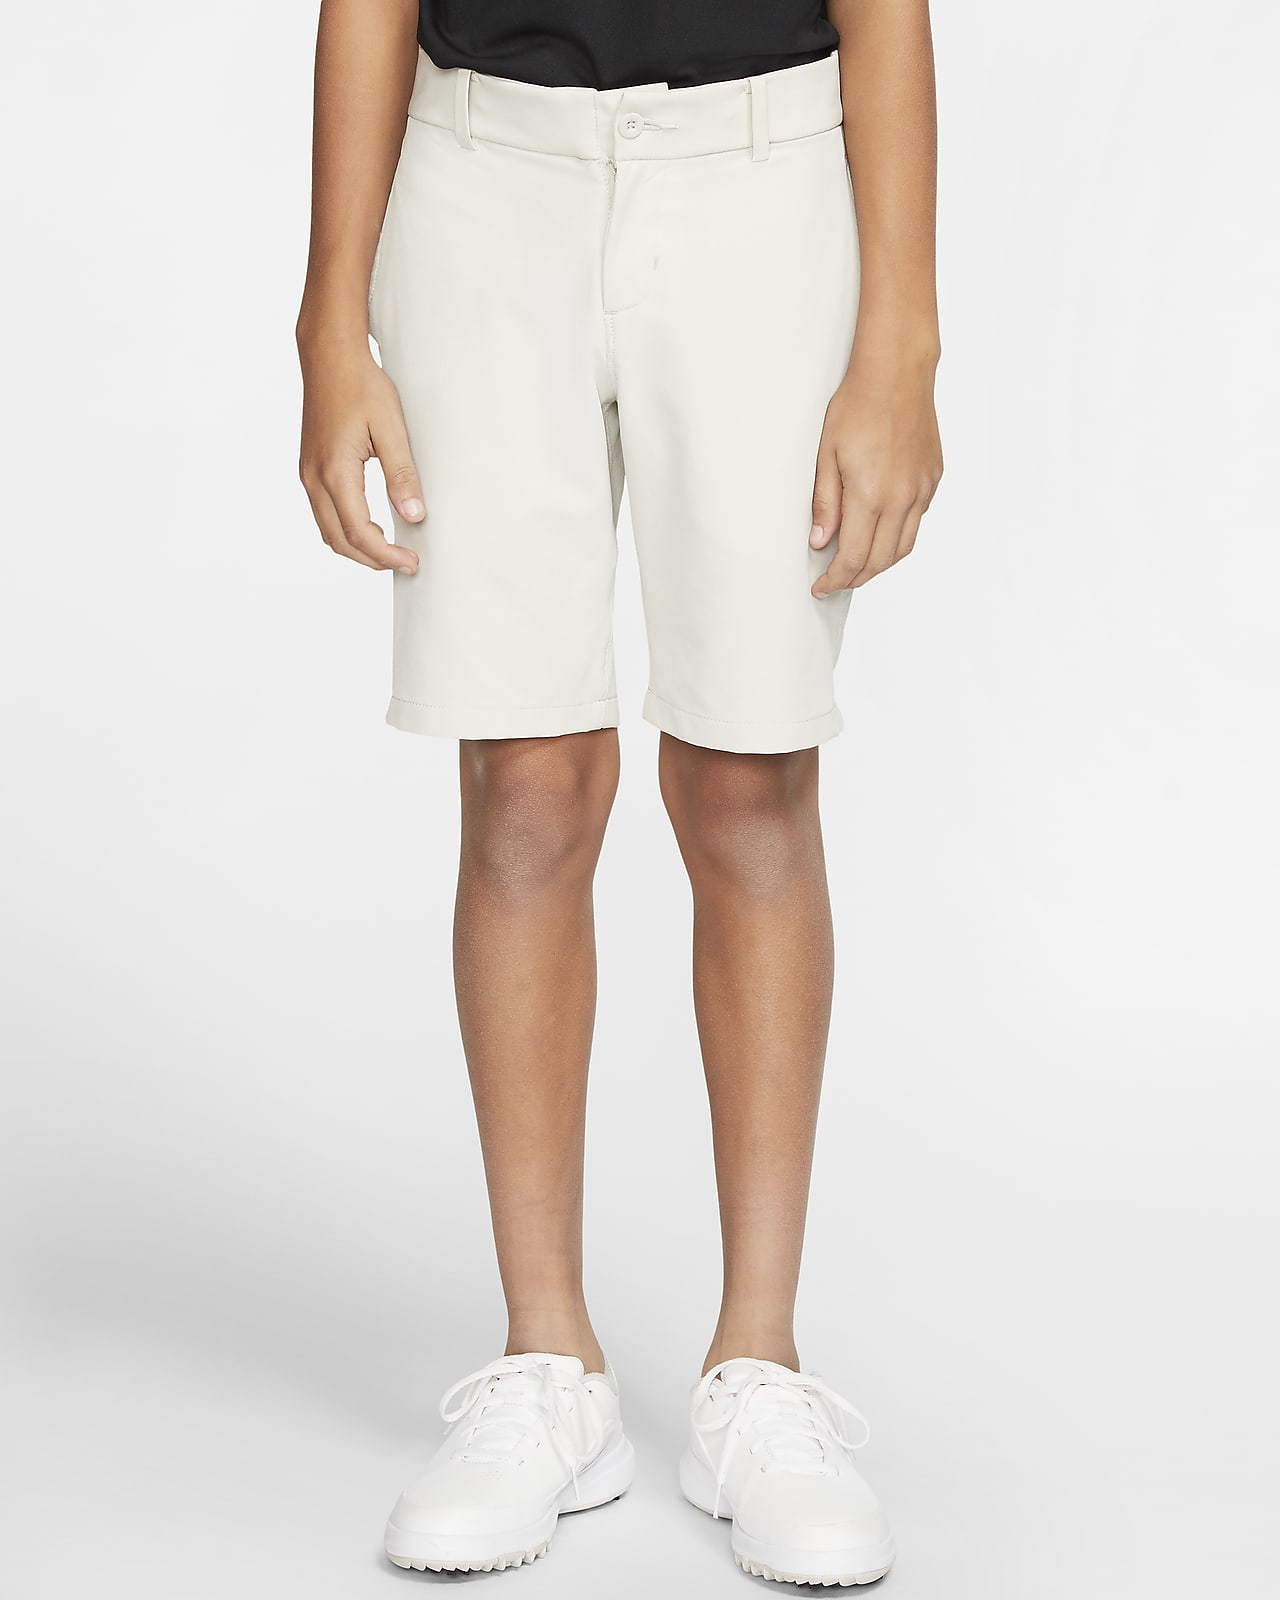 Nike Flex Older Kids' (Boys') Golf Shorts